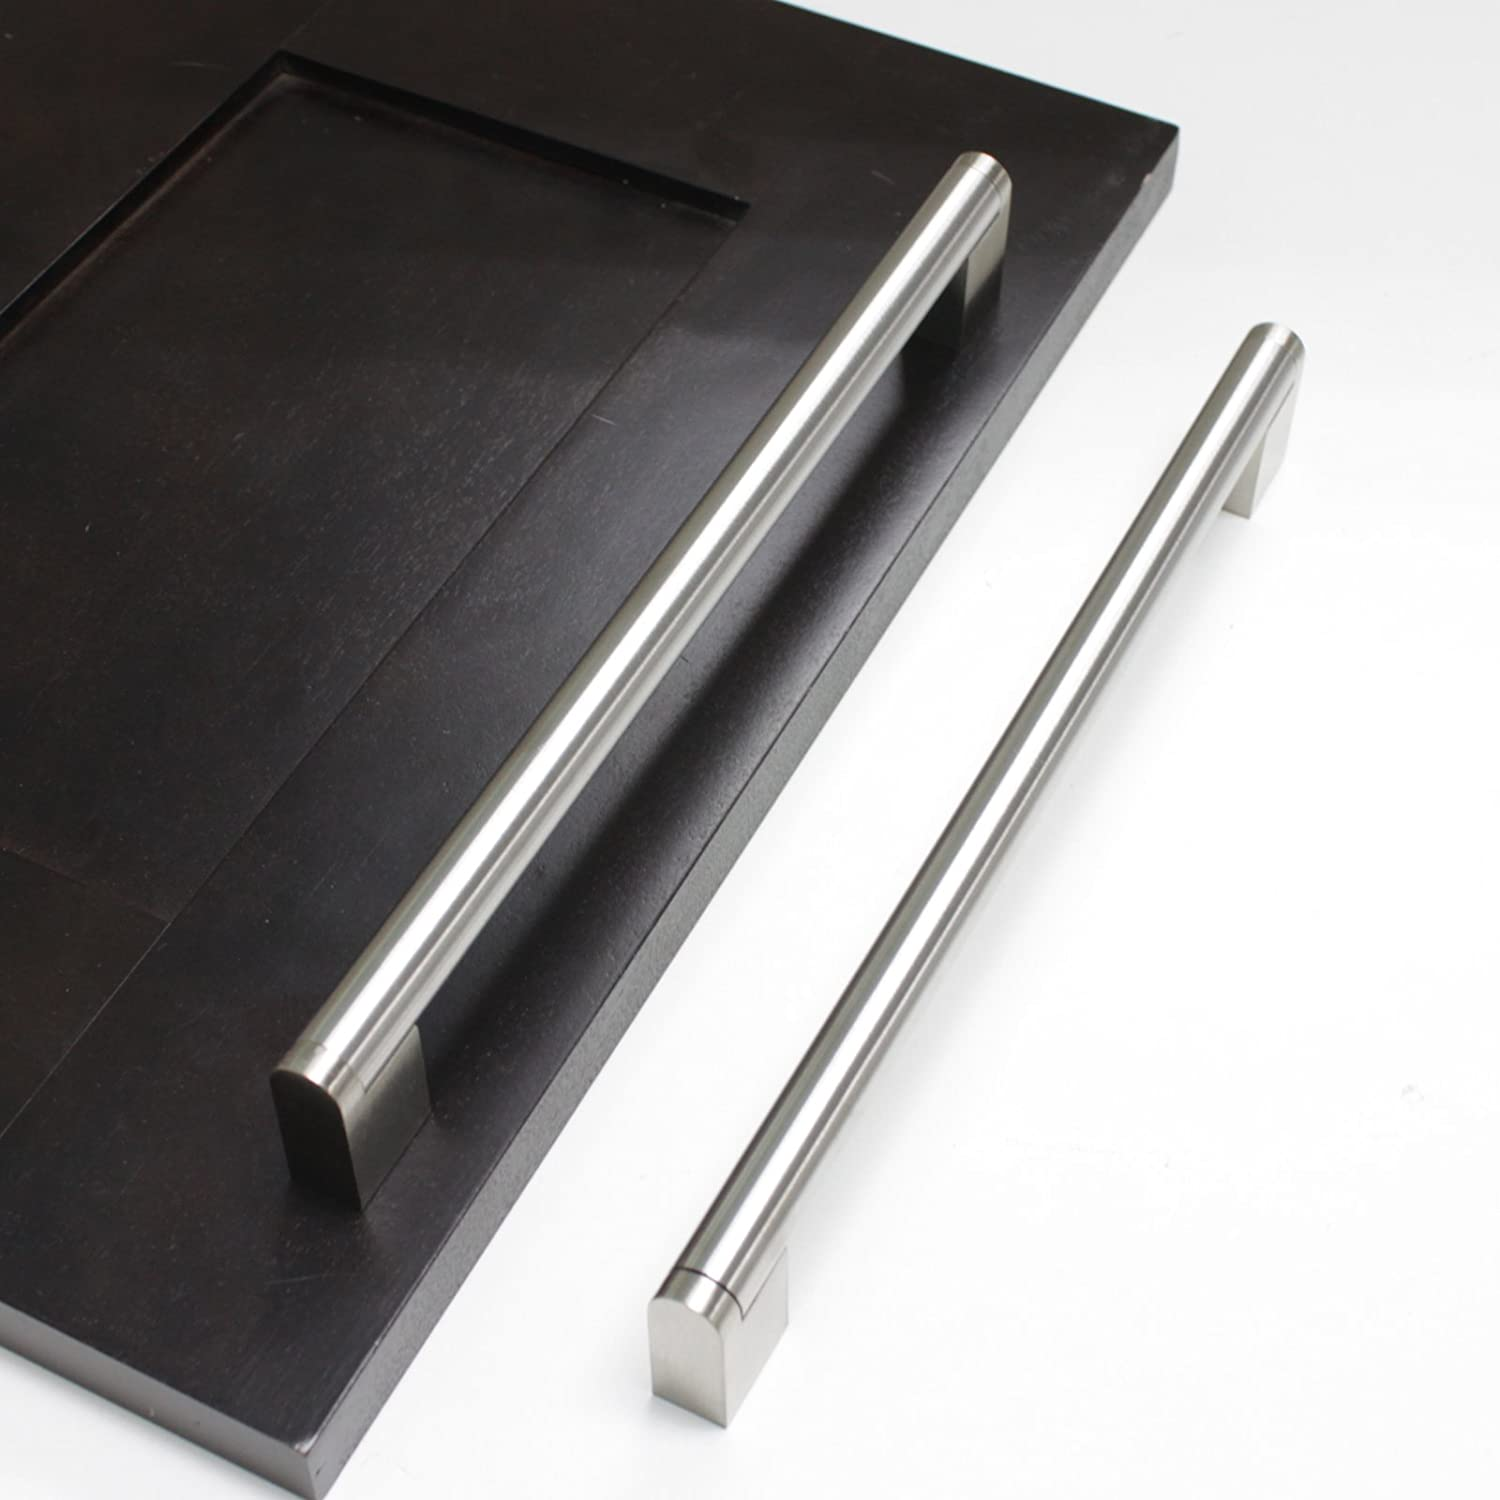 Gobrico Brushed Nickel Boss Bar 5in Overall Length 165mm 128mm Center to Center Kitchen Cabinet Handles 15Packs